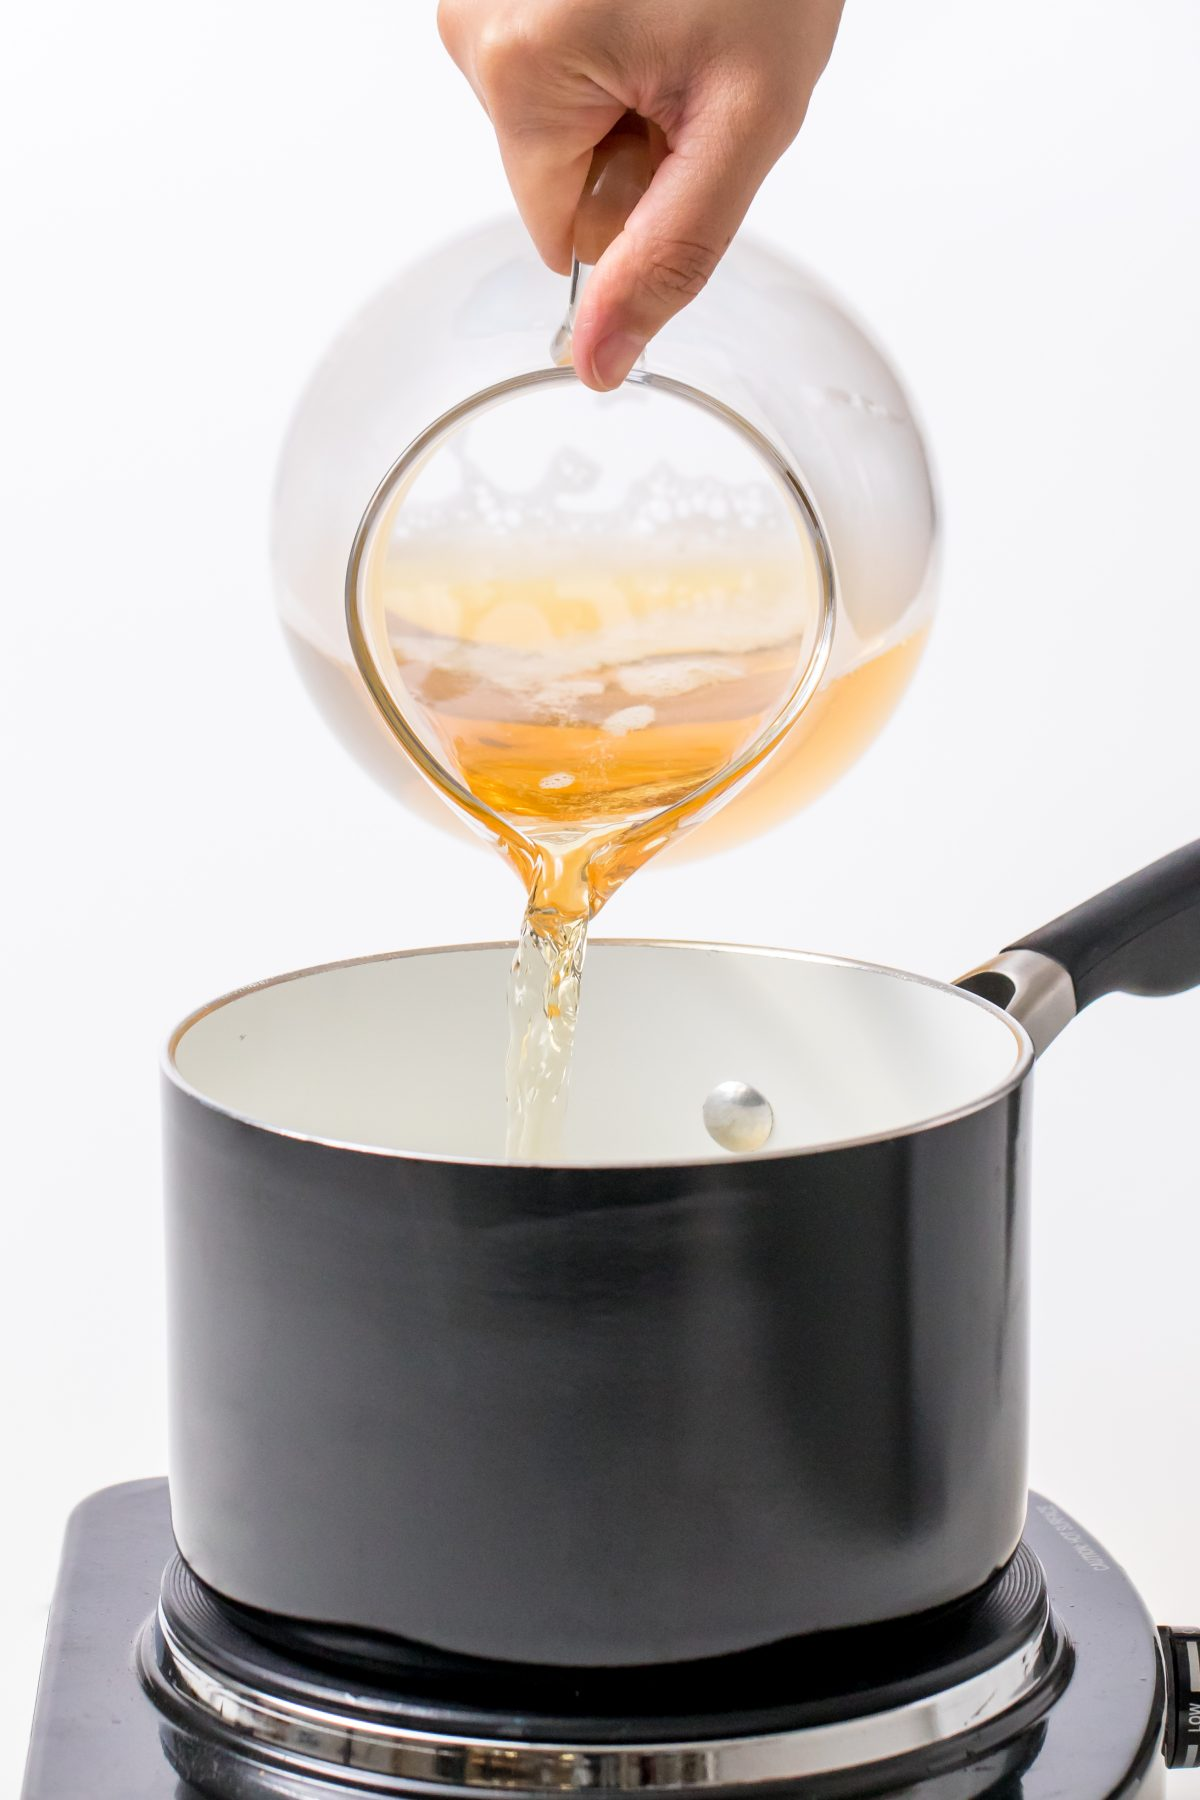 5D4B2498 - Hot Apple Cider with Buttered Rum - Combine cider, butter, fruit, ginger, spices, and brown sugar